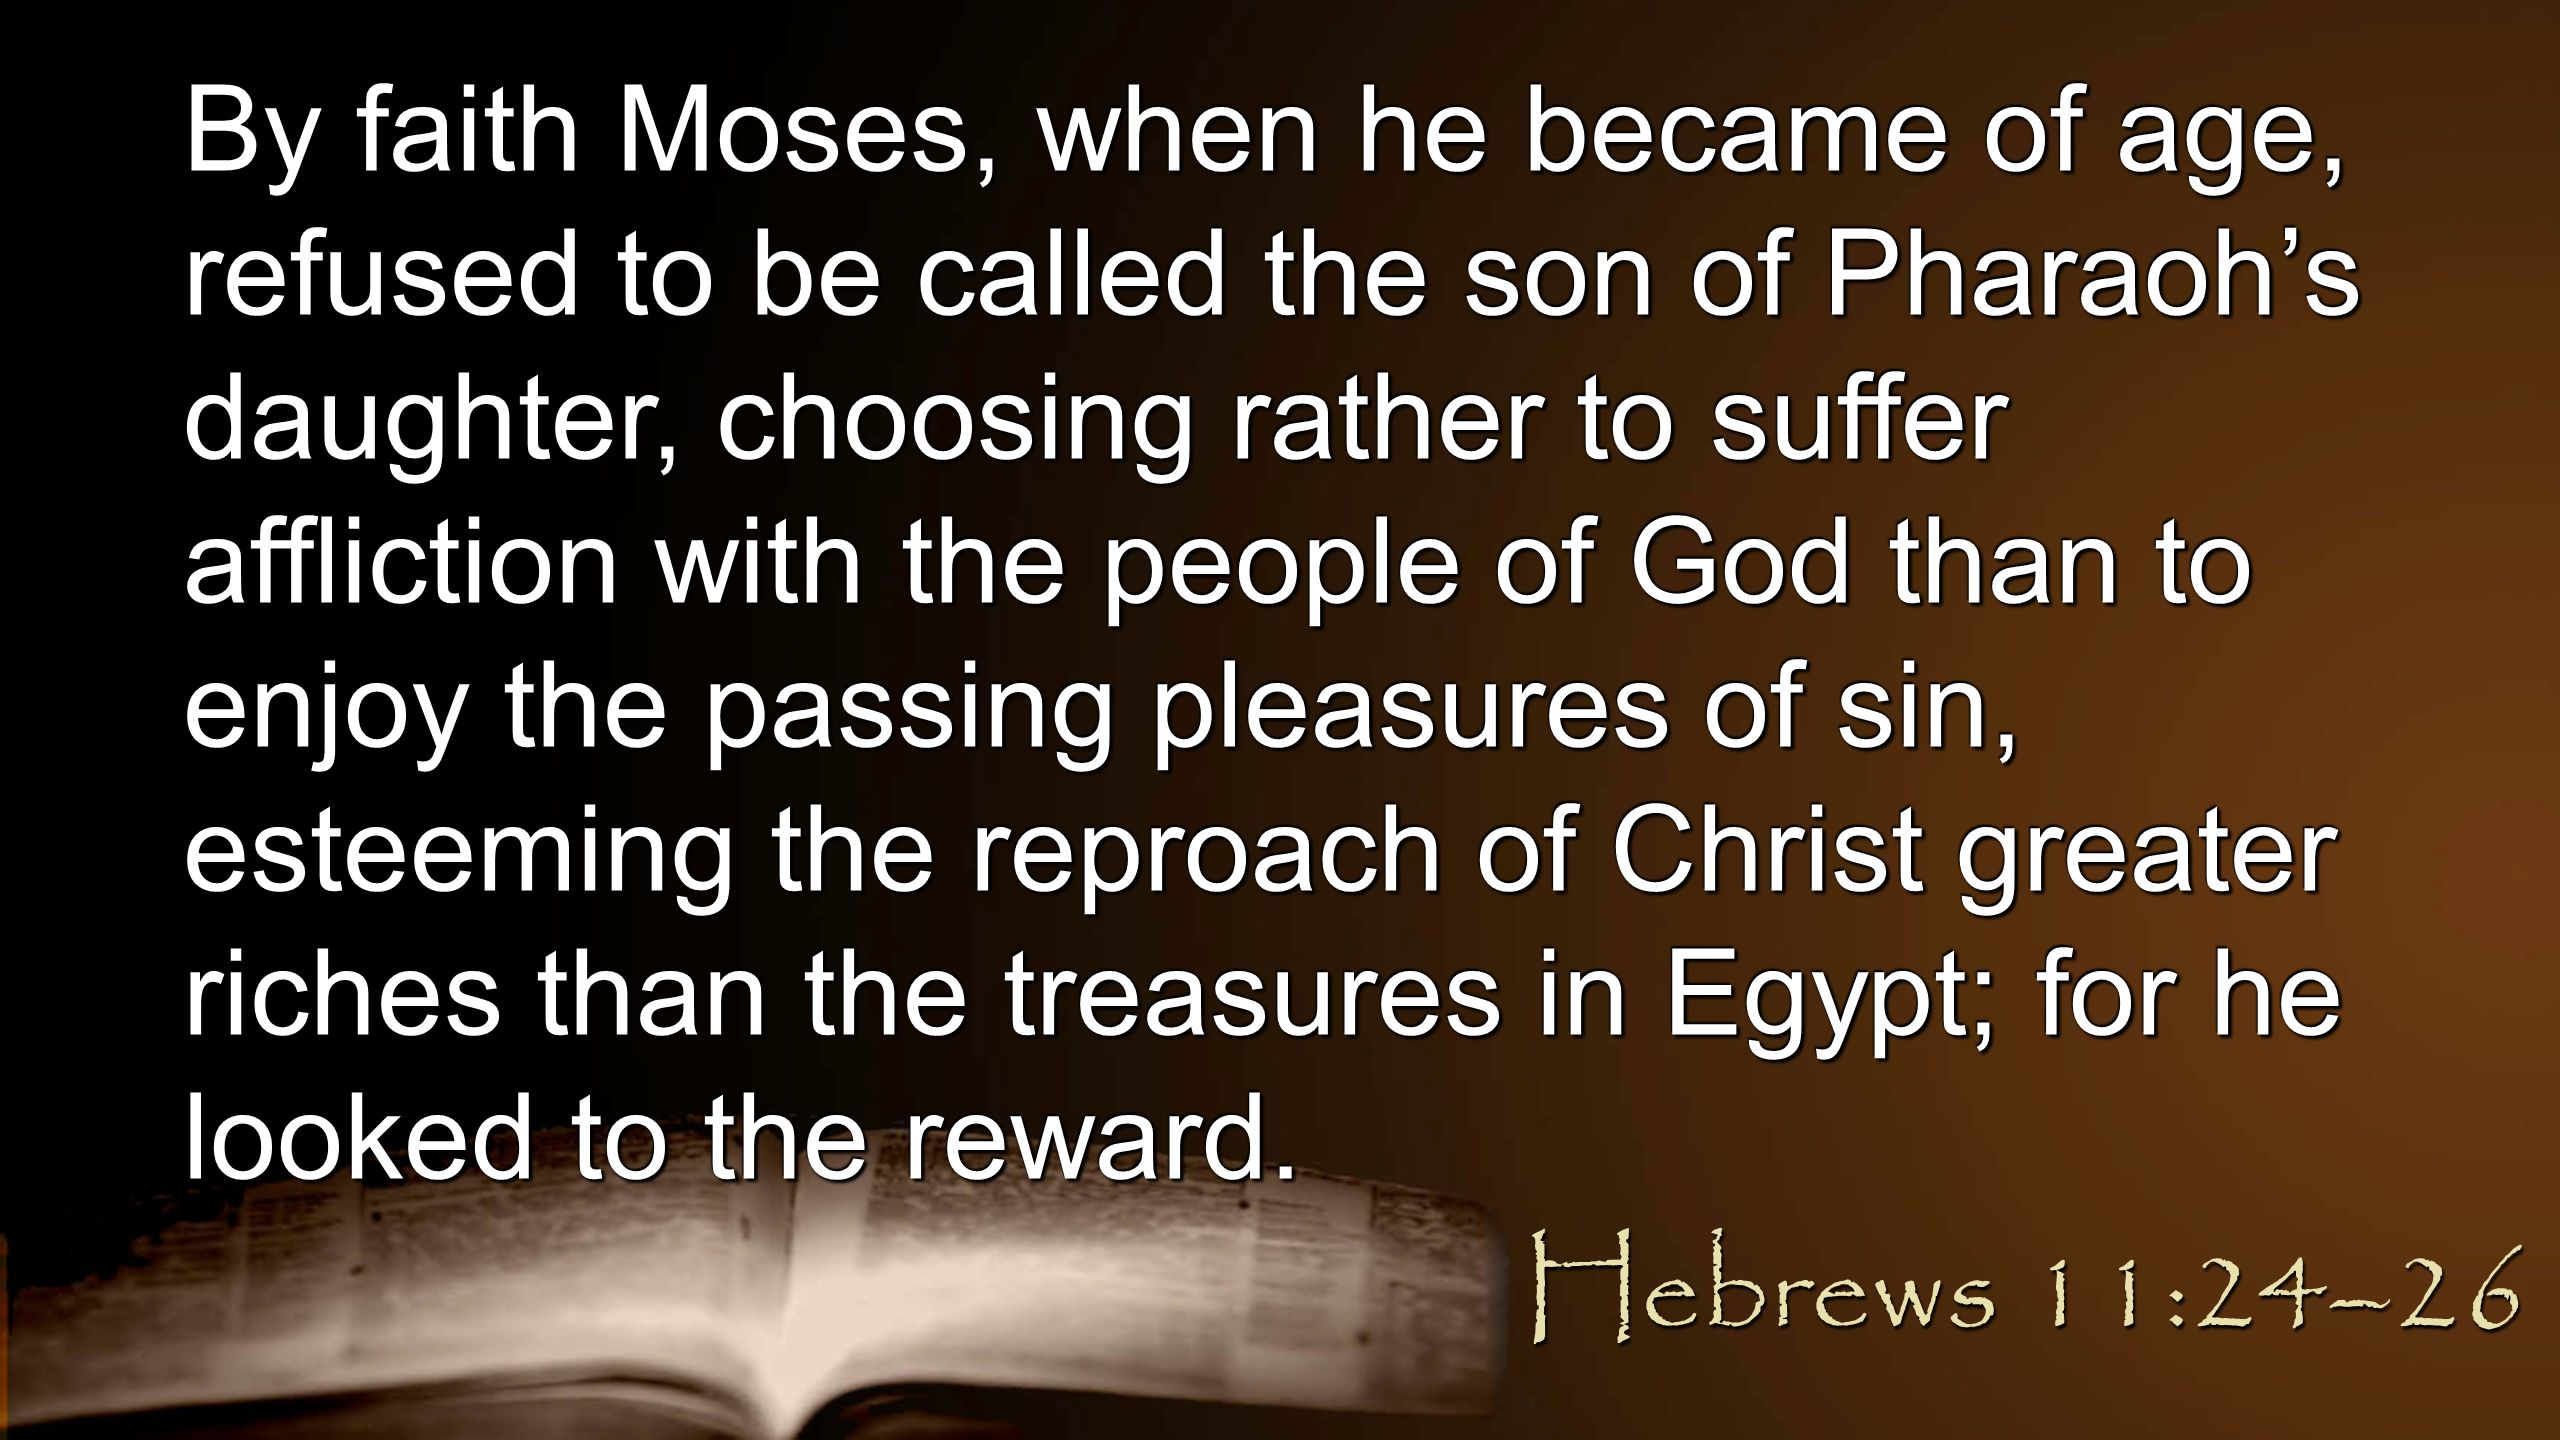 By faith Moses, when he became of age, refused to be called the son of Pharaoh's daughter, choosing rather to suffer affliction with the people of God than to enjoy the passing pleasures of sin, esteeming the reproach of Christ greater riches than the treasures in Egypt; for he looked to the reward.